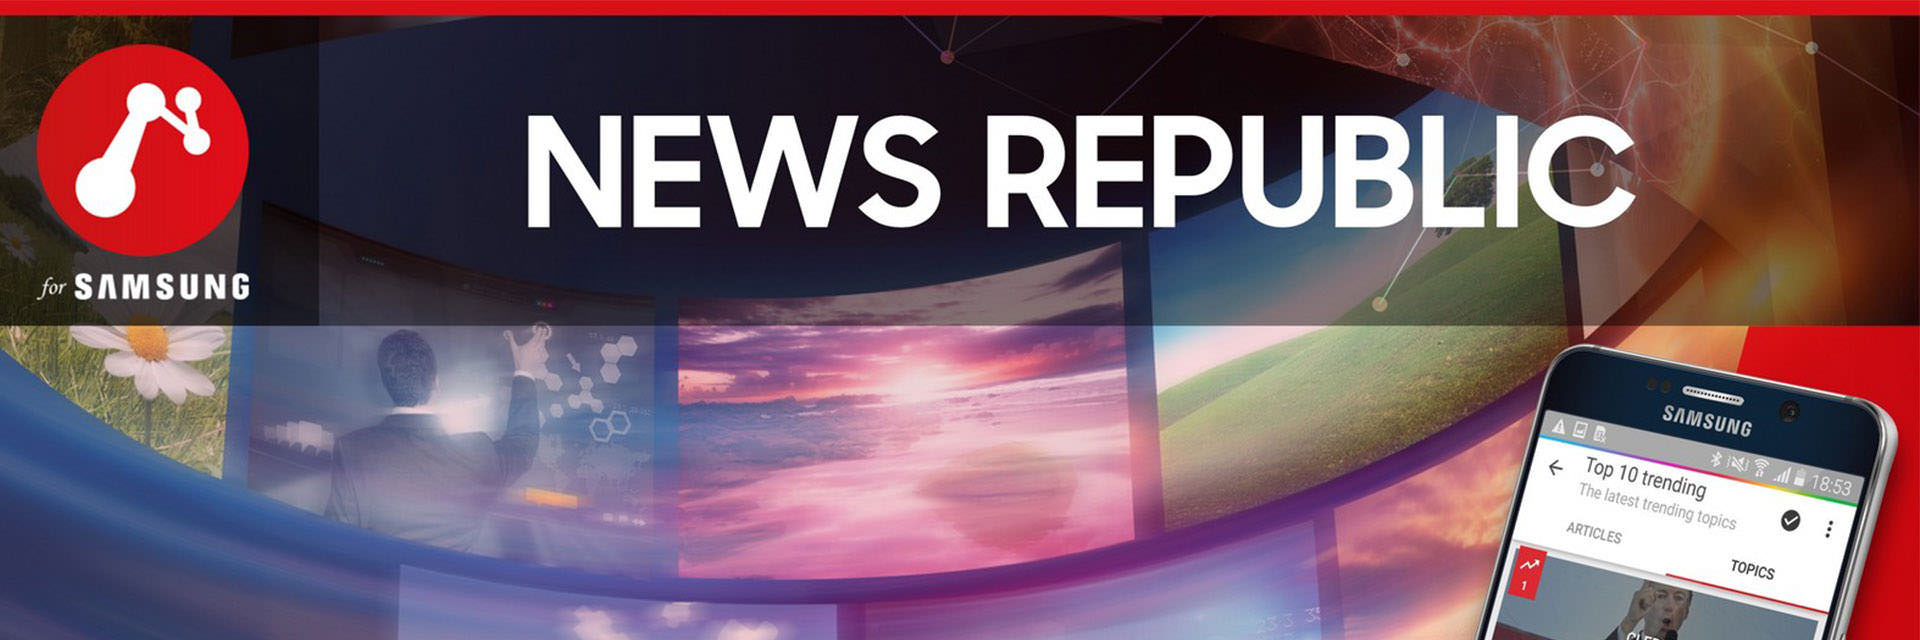 News Republic — A Great Example of What We Look For in a Samsung Partner